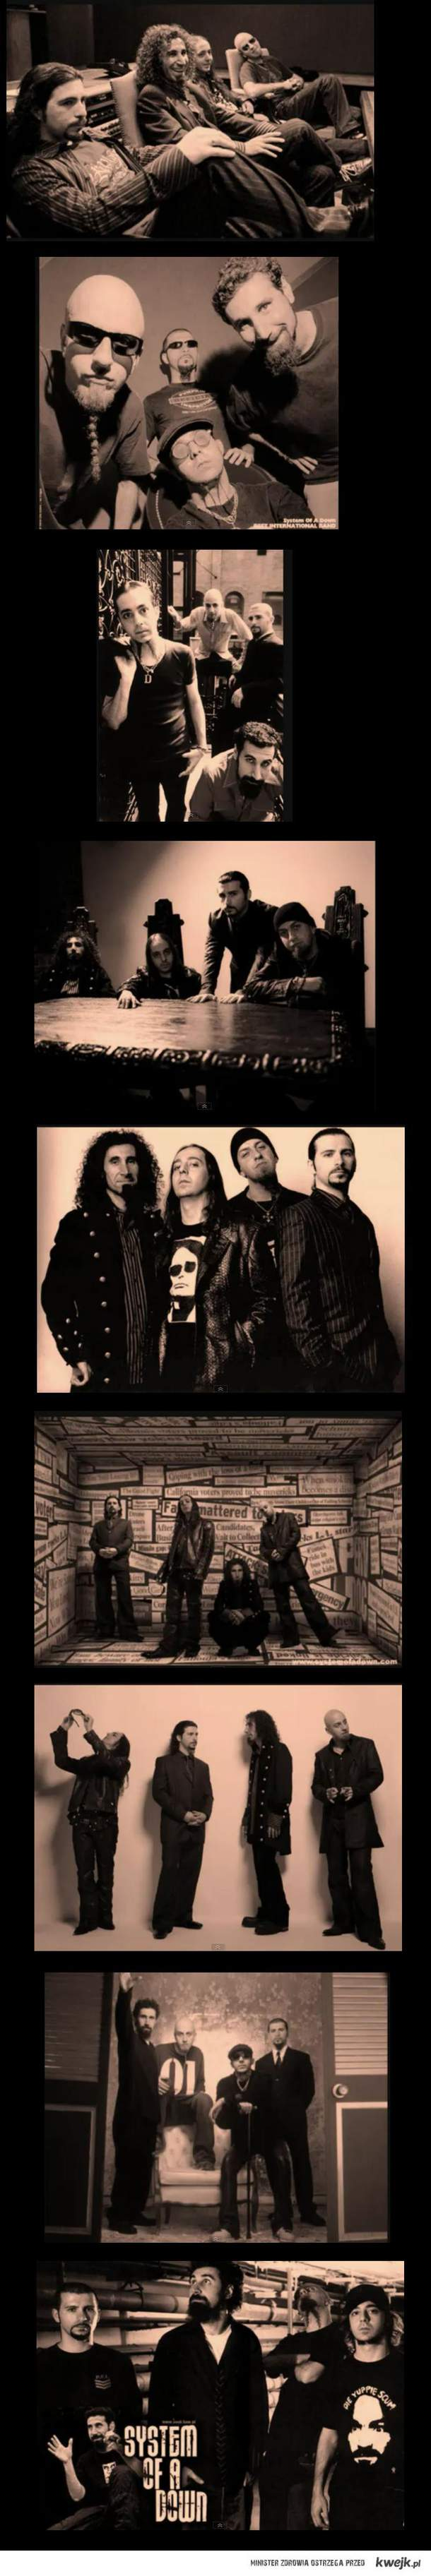 I love System of a Down <3